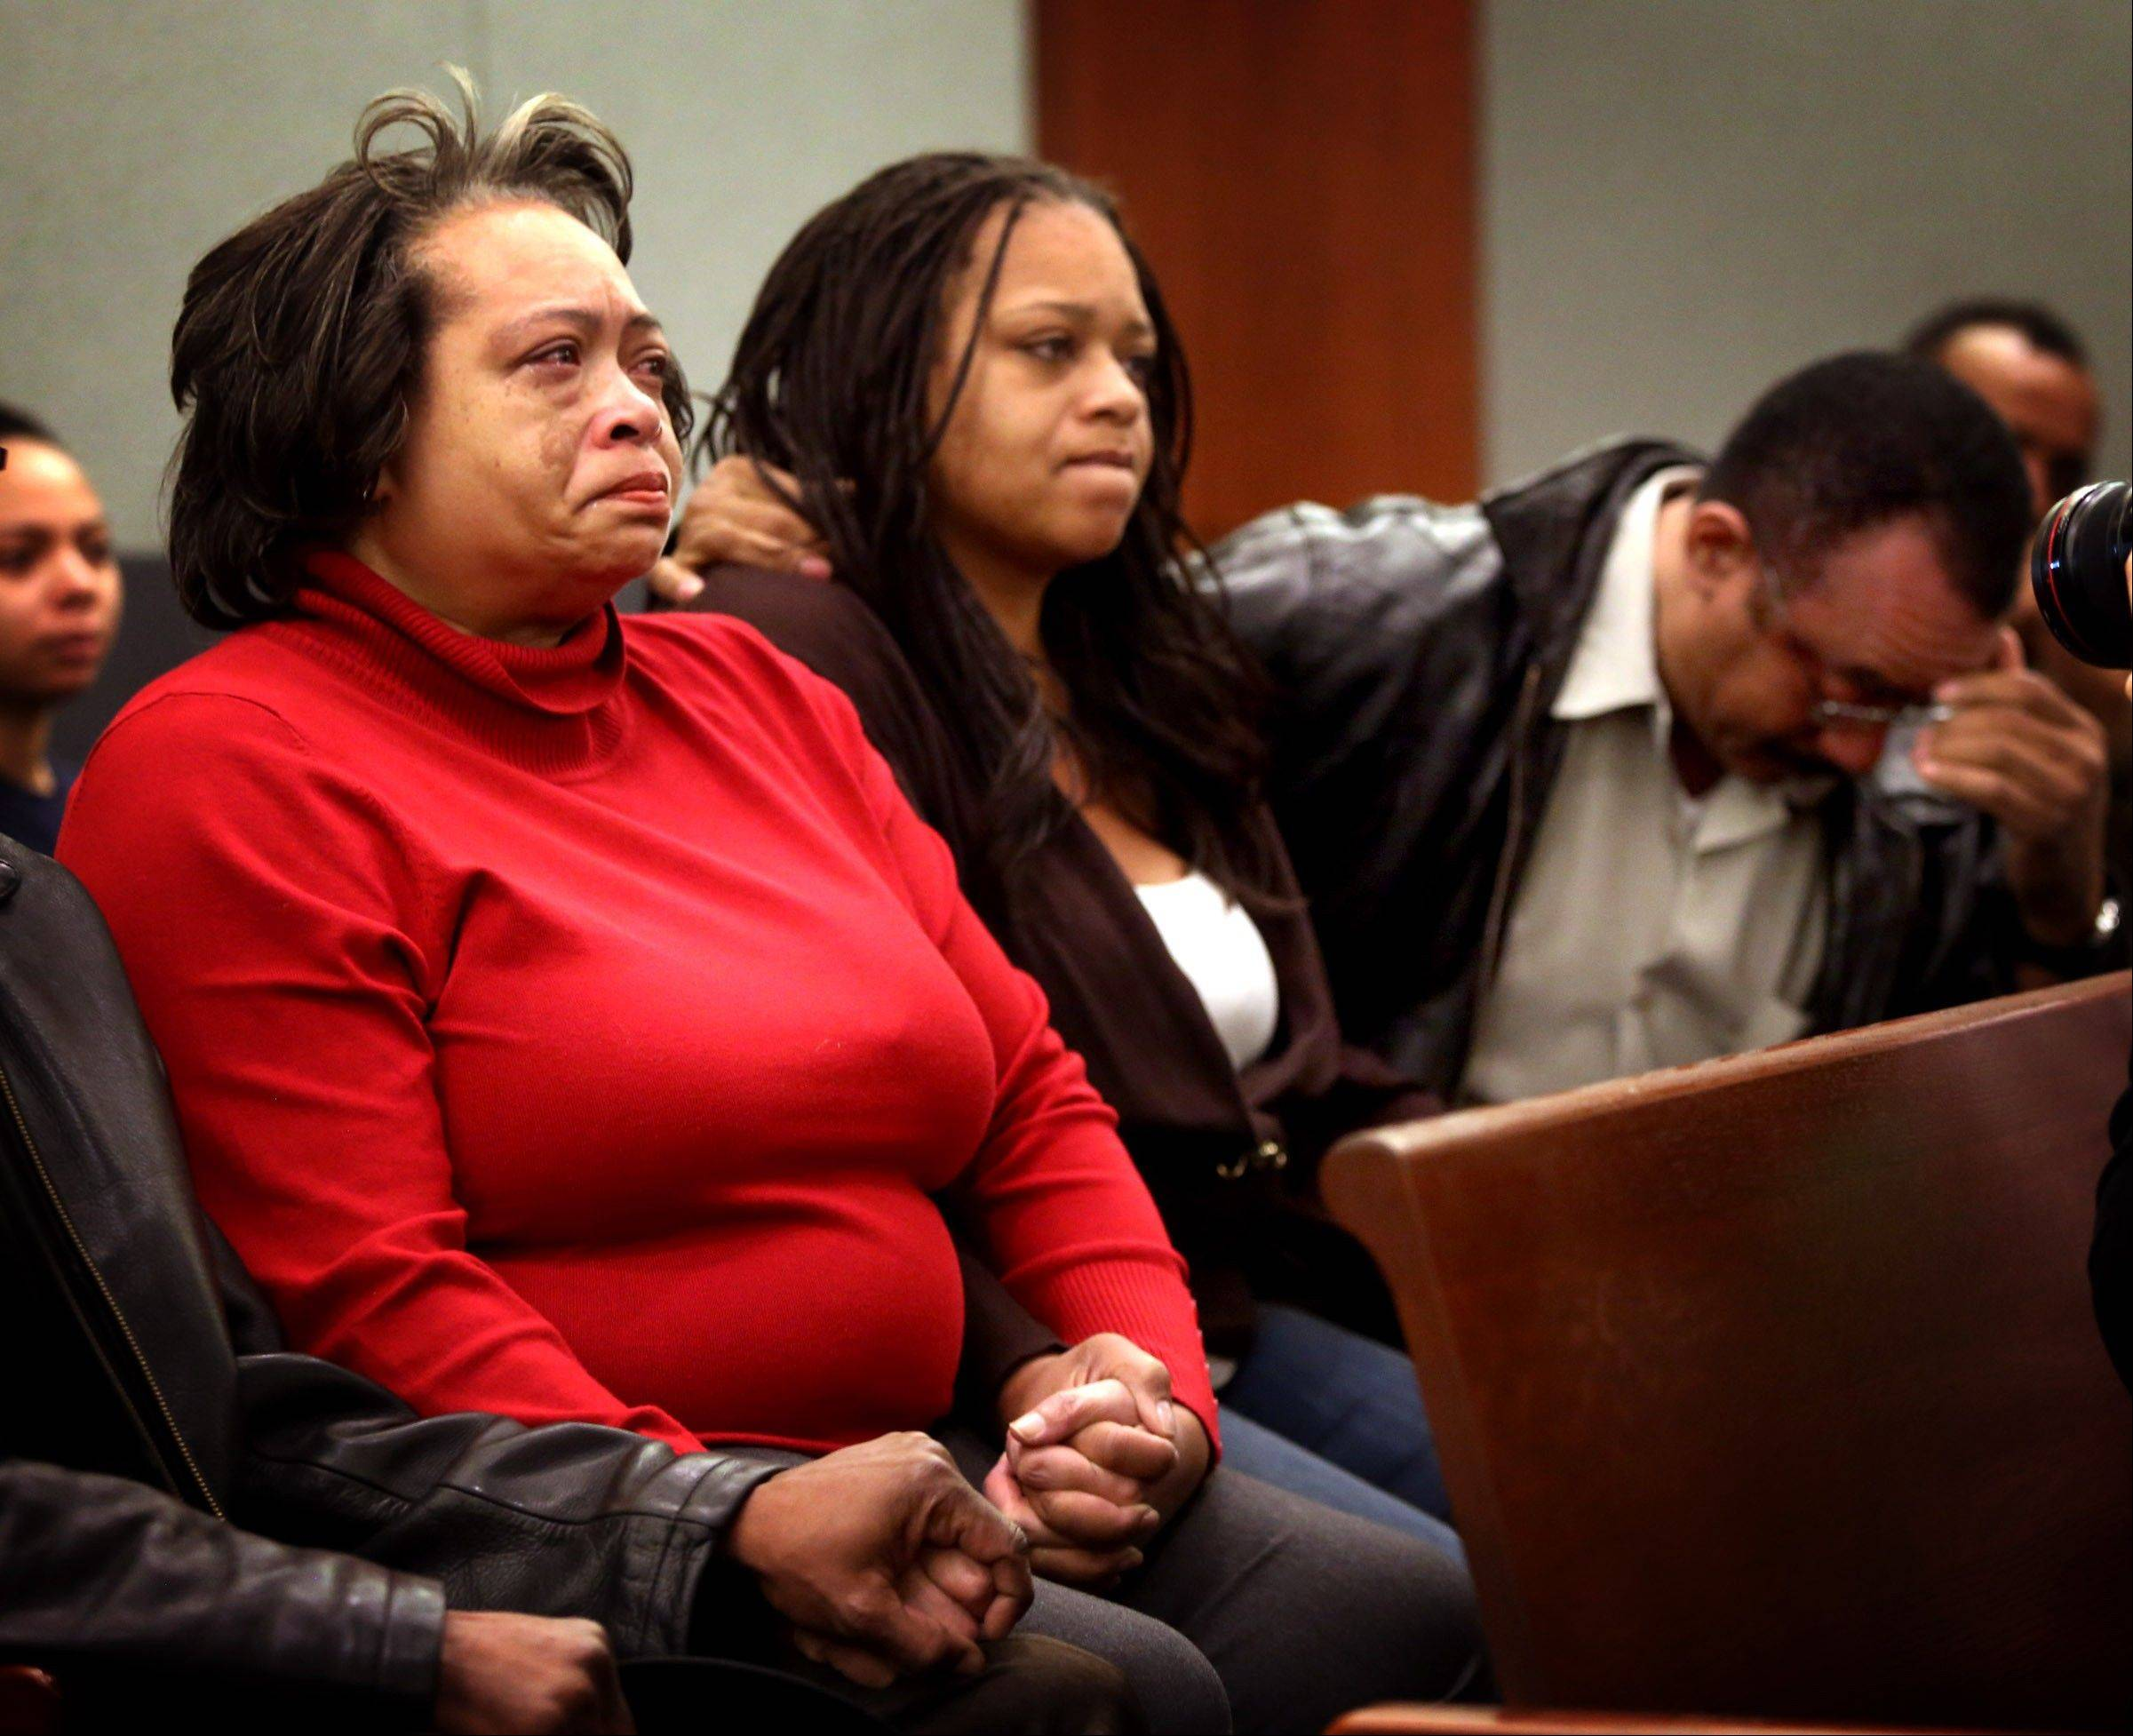 Claudette Flanagan-Jones, left, Jade Morris' grandmother, Tejuana Reeves-Morris, Jade's mother, and Andres Mack, Jade's grandfather, sit while Brenda Stokes Wilson appears at Clark County Justice Court, Friday in Las Vegas. Wilson is accused of slashing a Bellagio blackjack dealer and is suspected of kidnapping and slaying 10-year-old Jade Morris. A judge raised bail for Wilson from $60,000 to $600,000 on Friday in light of expected murder charges to be filed Friday afternoon.